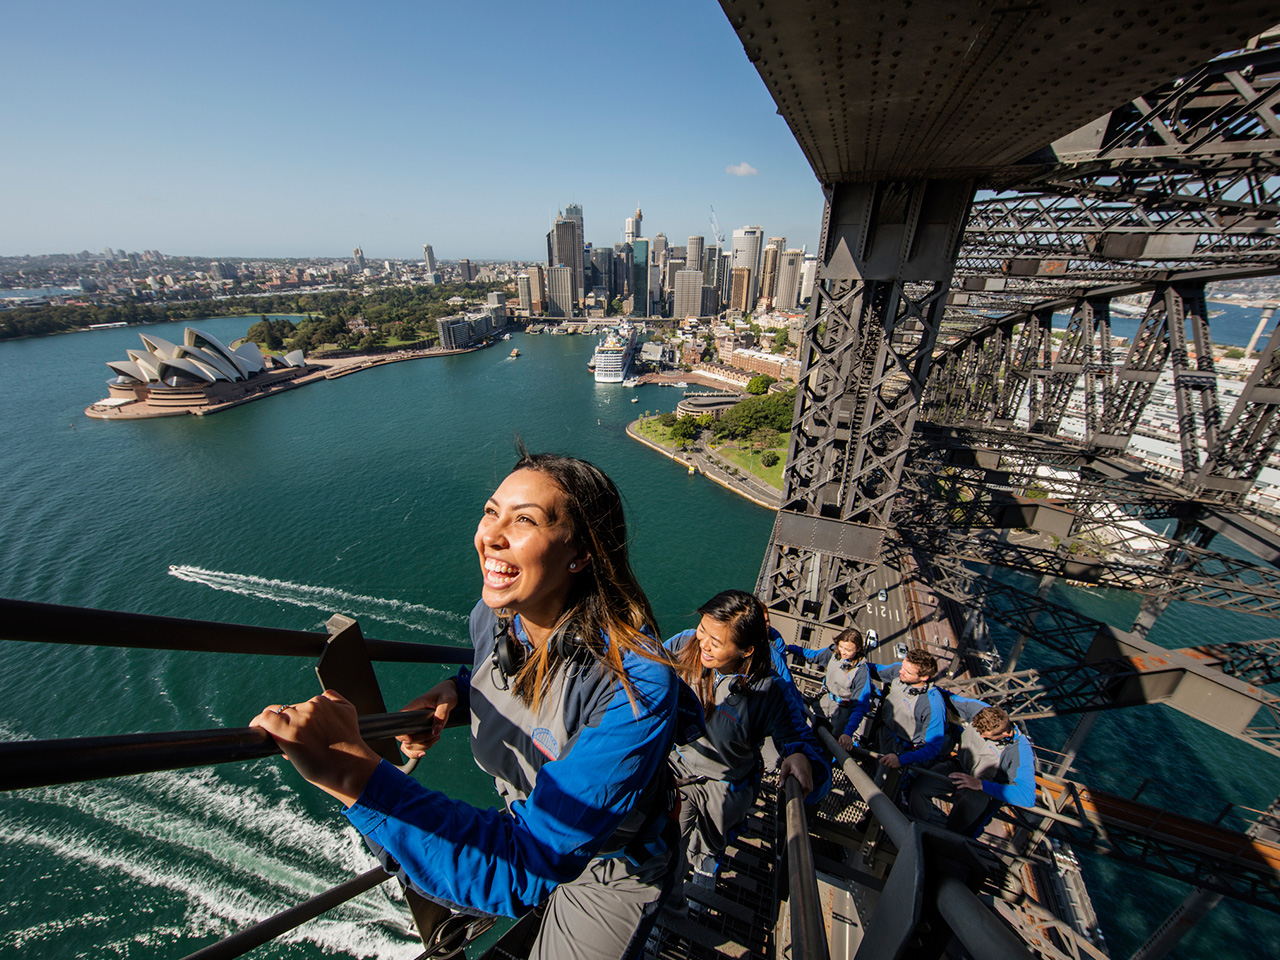 5 Reasons the Sydney BridgeClimb Is a Must-Do